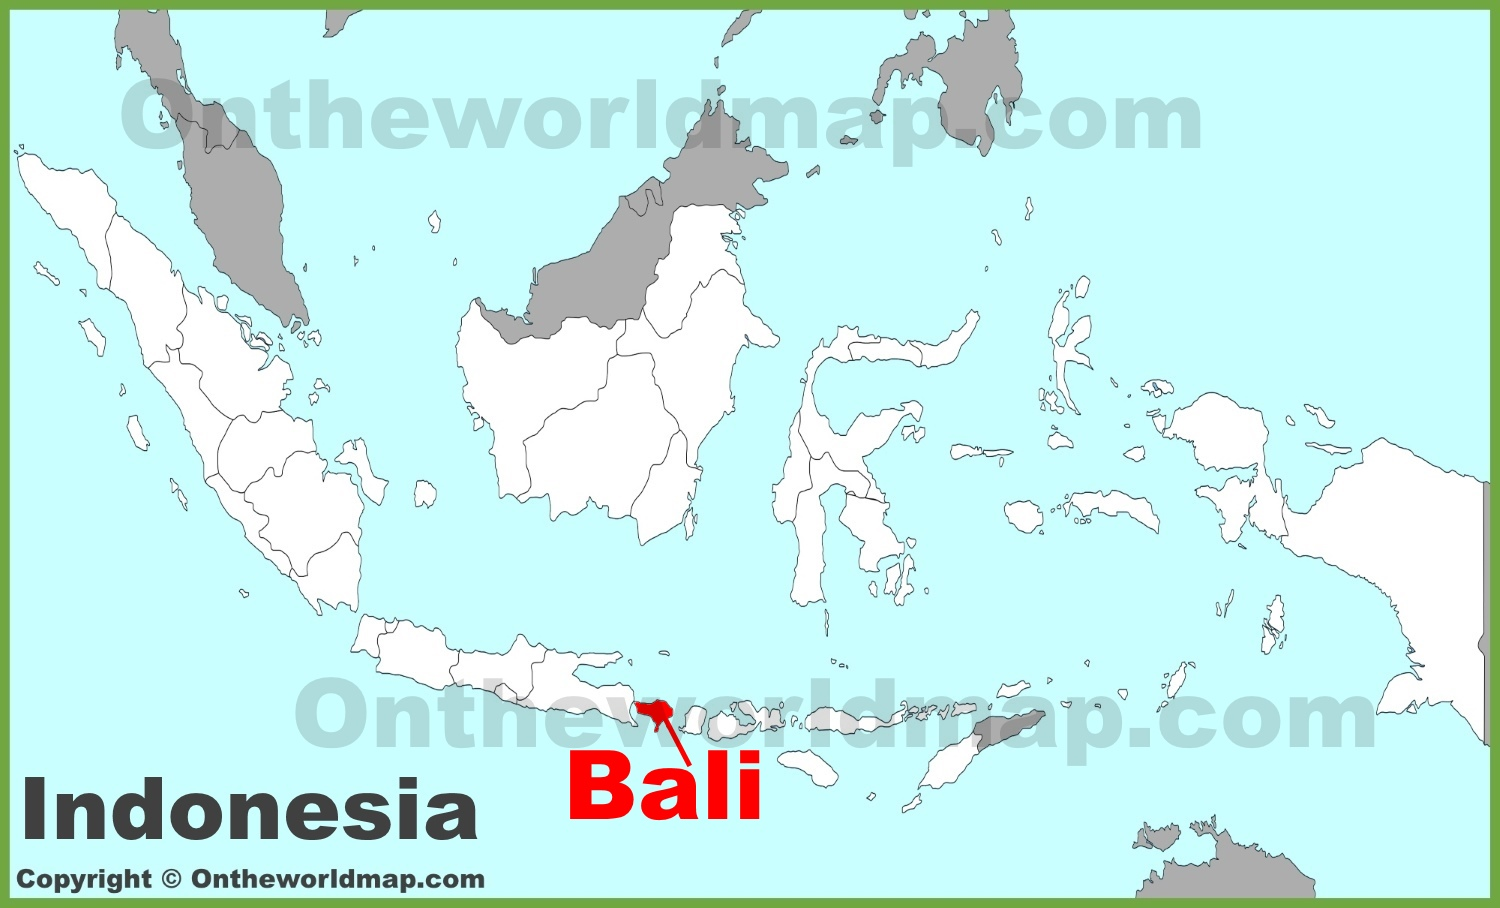 Bali location on the Ireland map